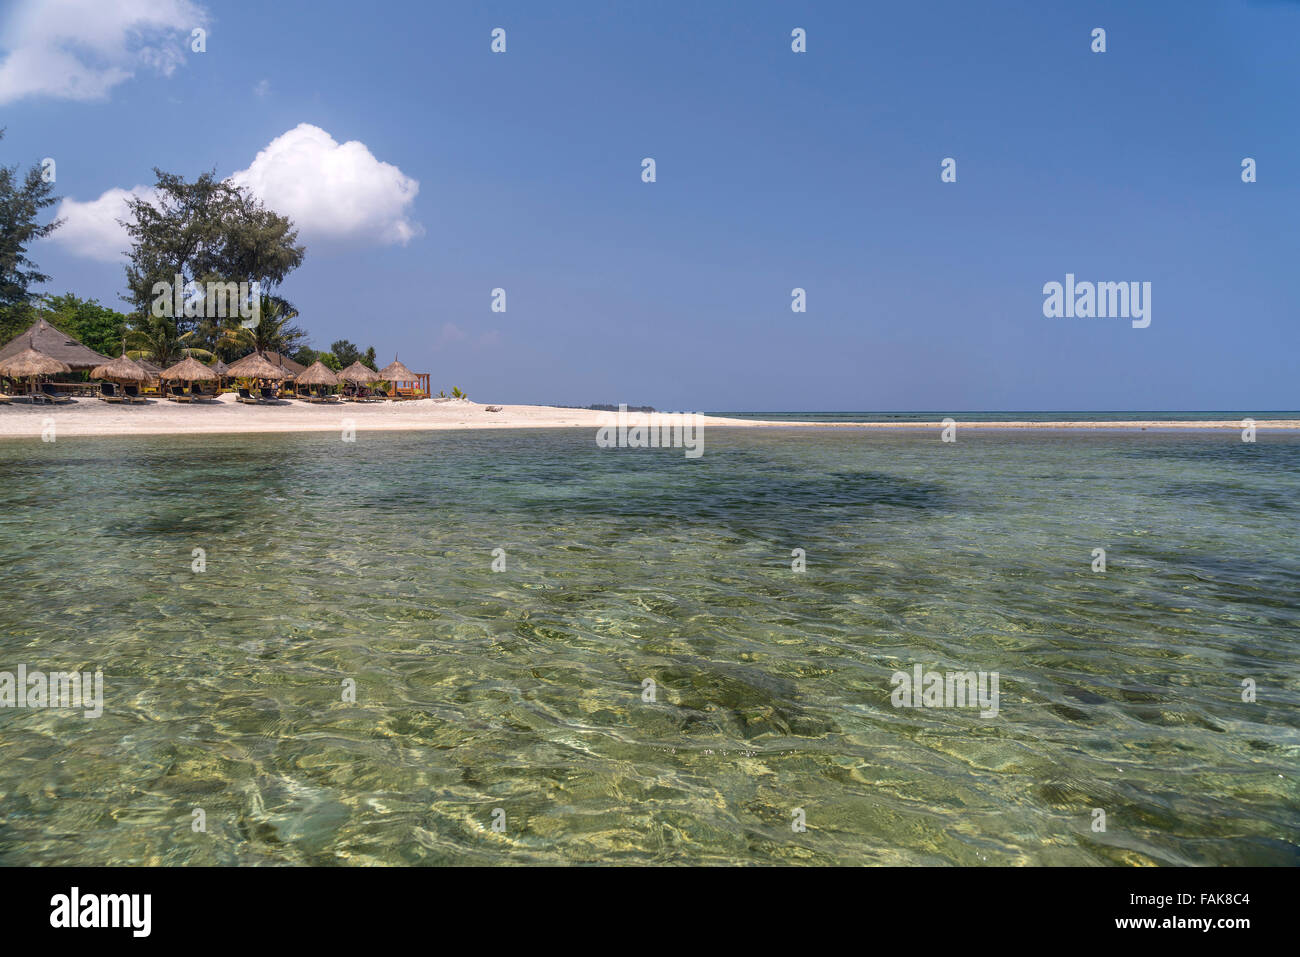 Beach on the small island Gili Air, Lombok, Indonesia, Asi - Stock Image